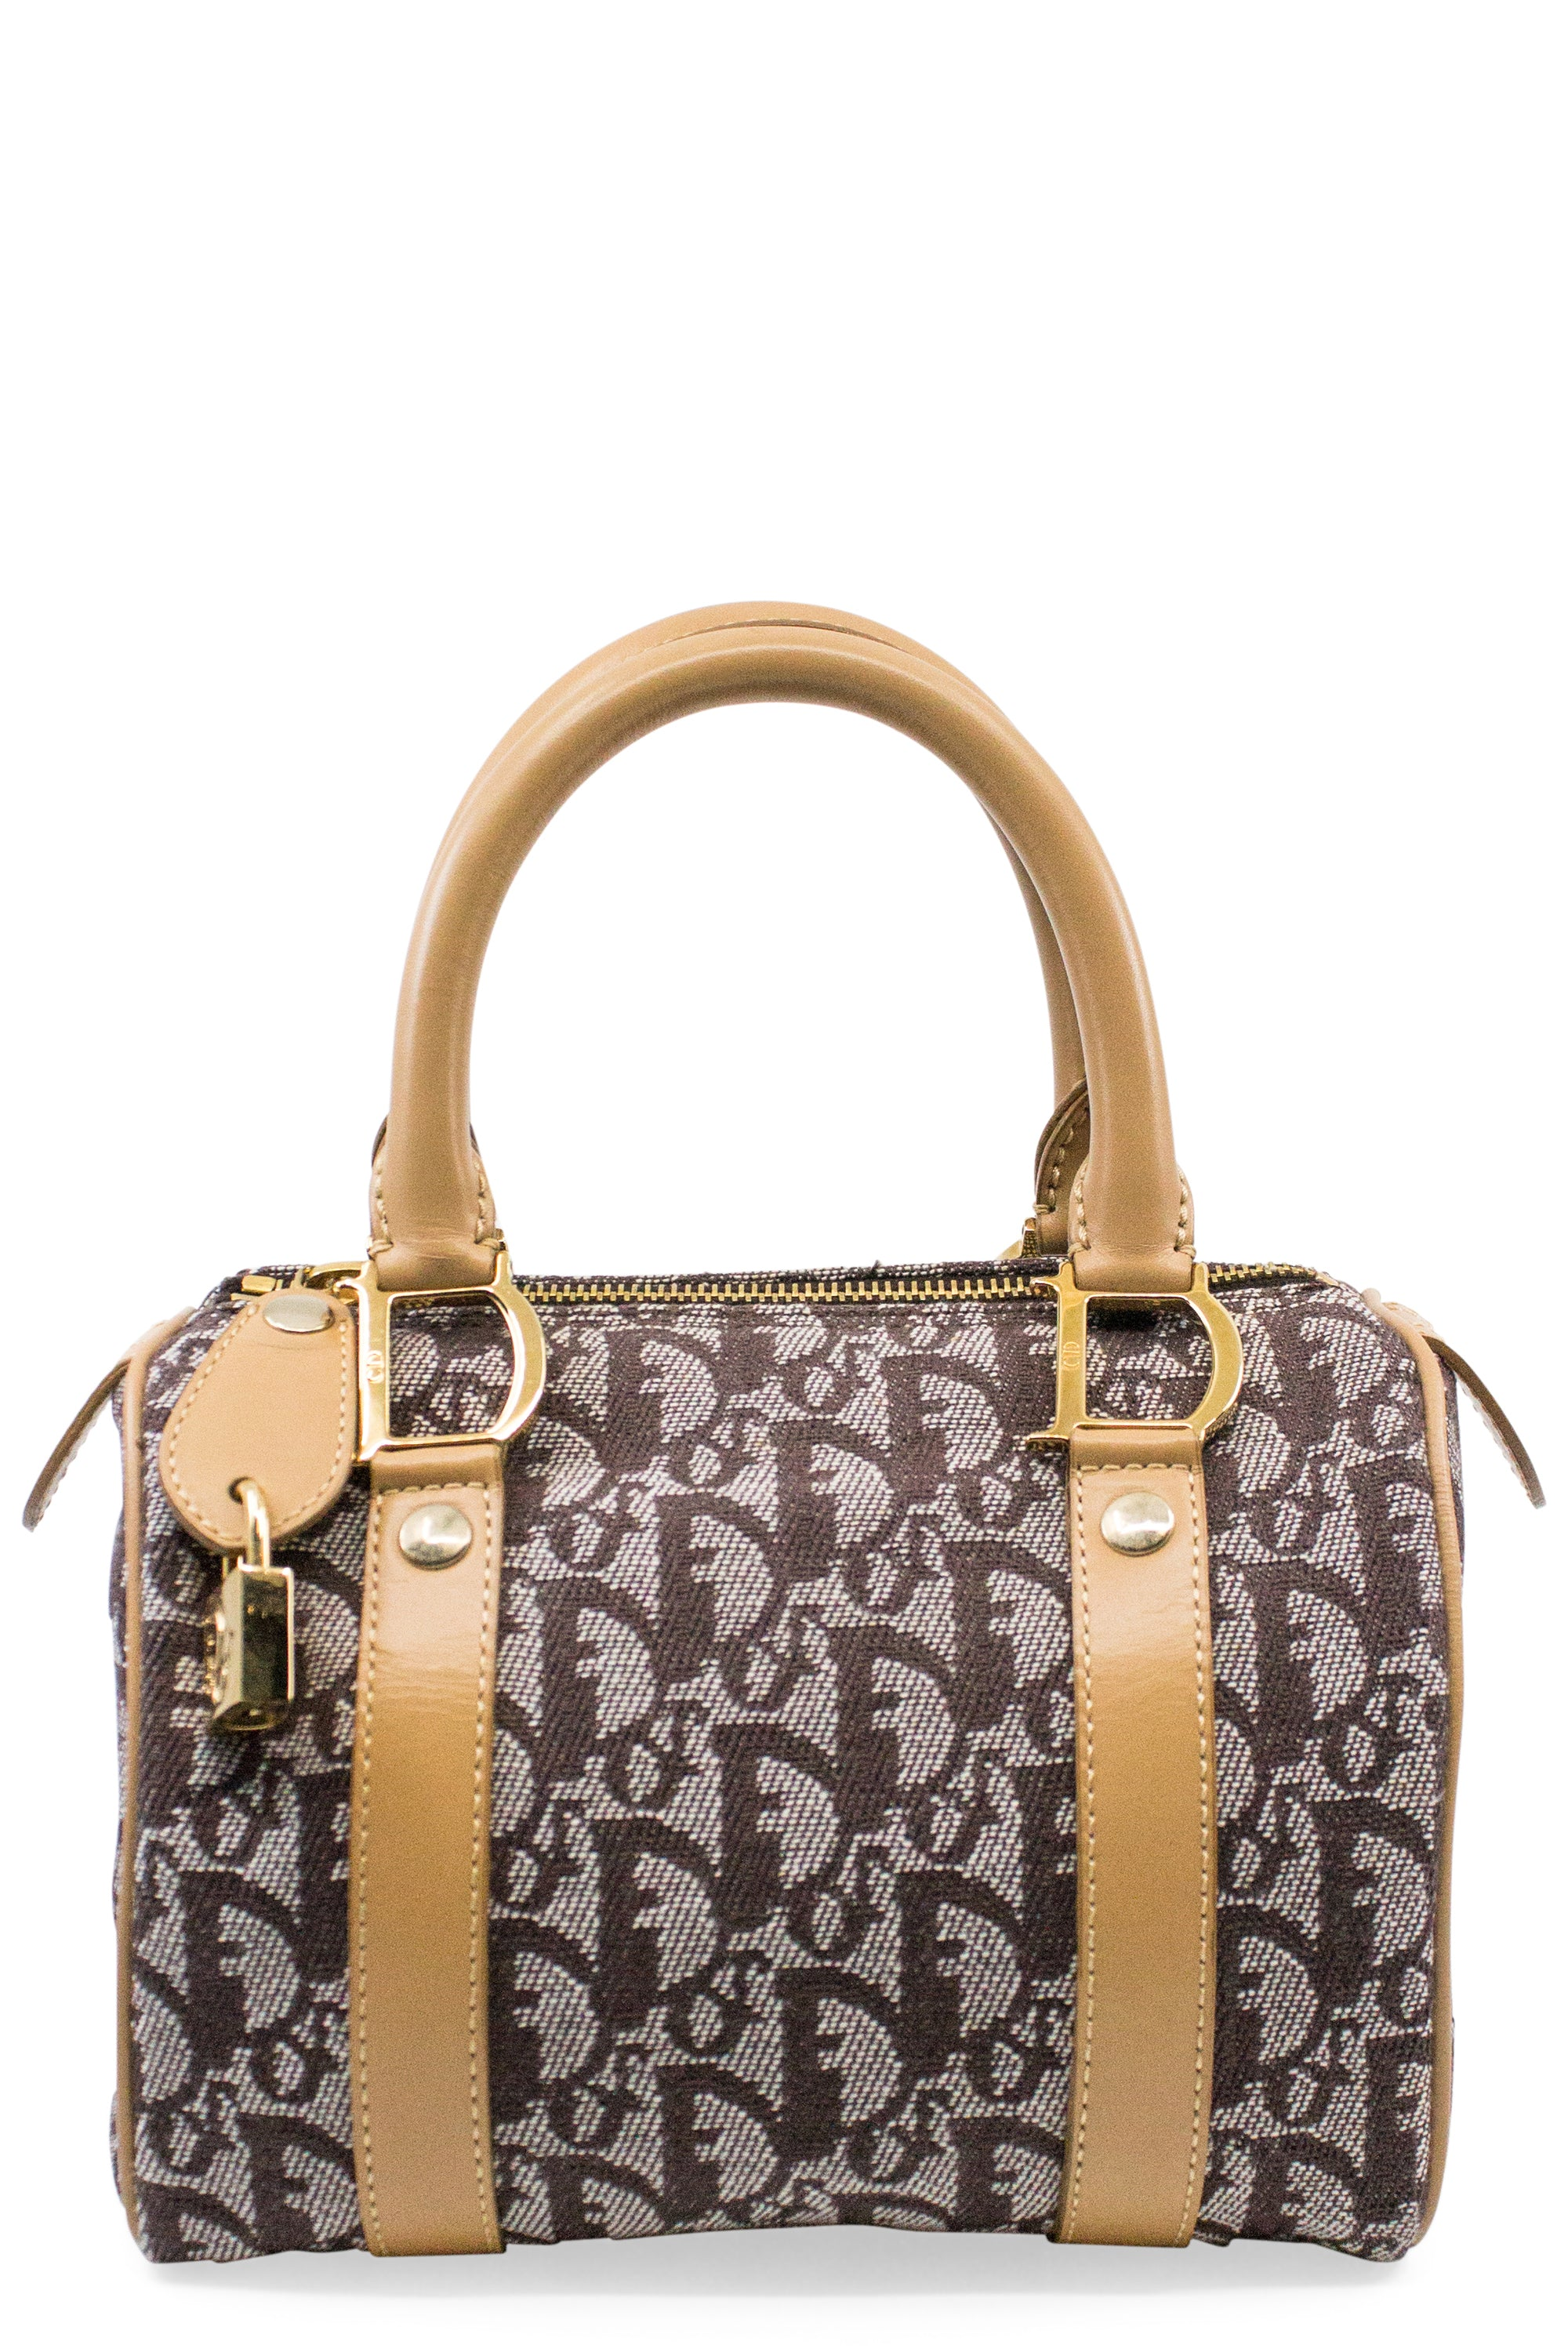 CHRISTIAN DIOR Mini Boston Bag Brown Frontansicht